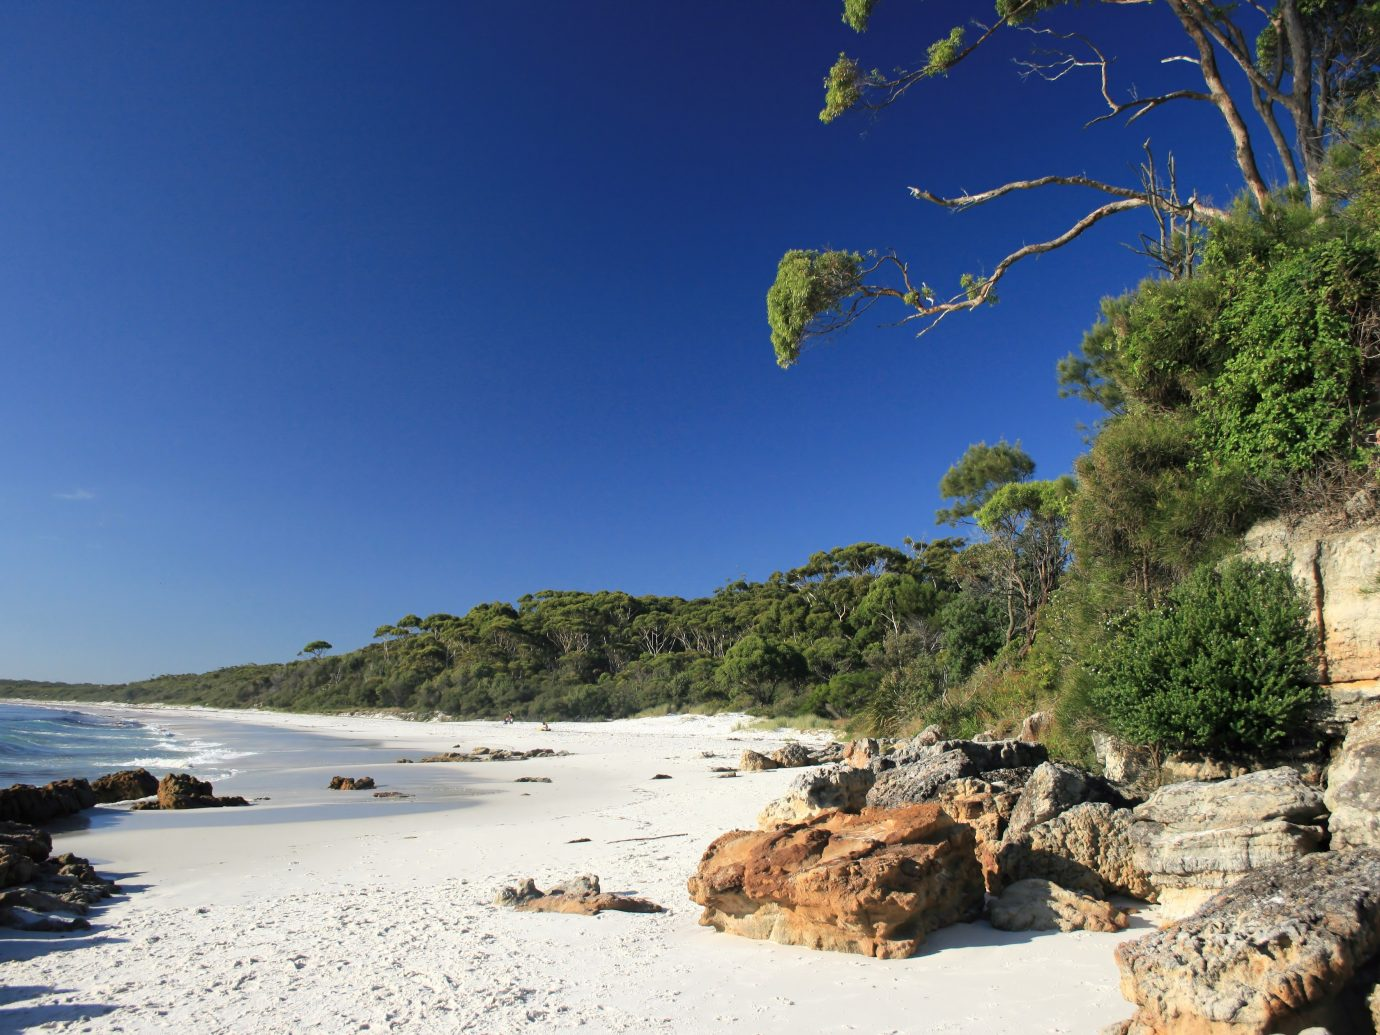 One of the beautiful beaches in Jarvis bay,NSW,Australia